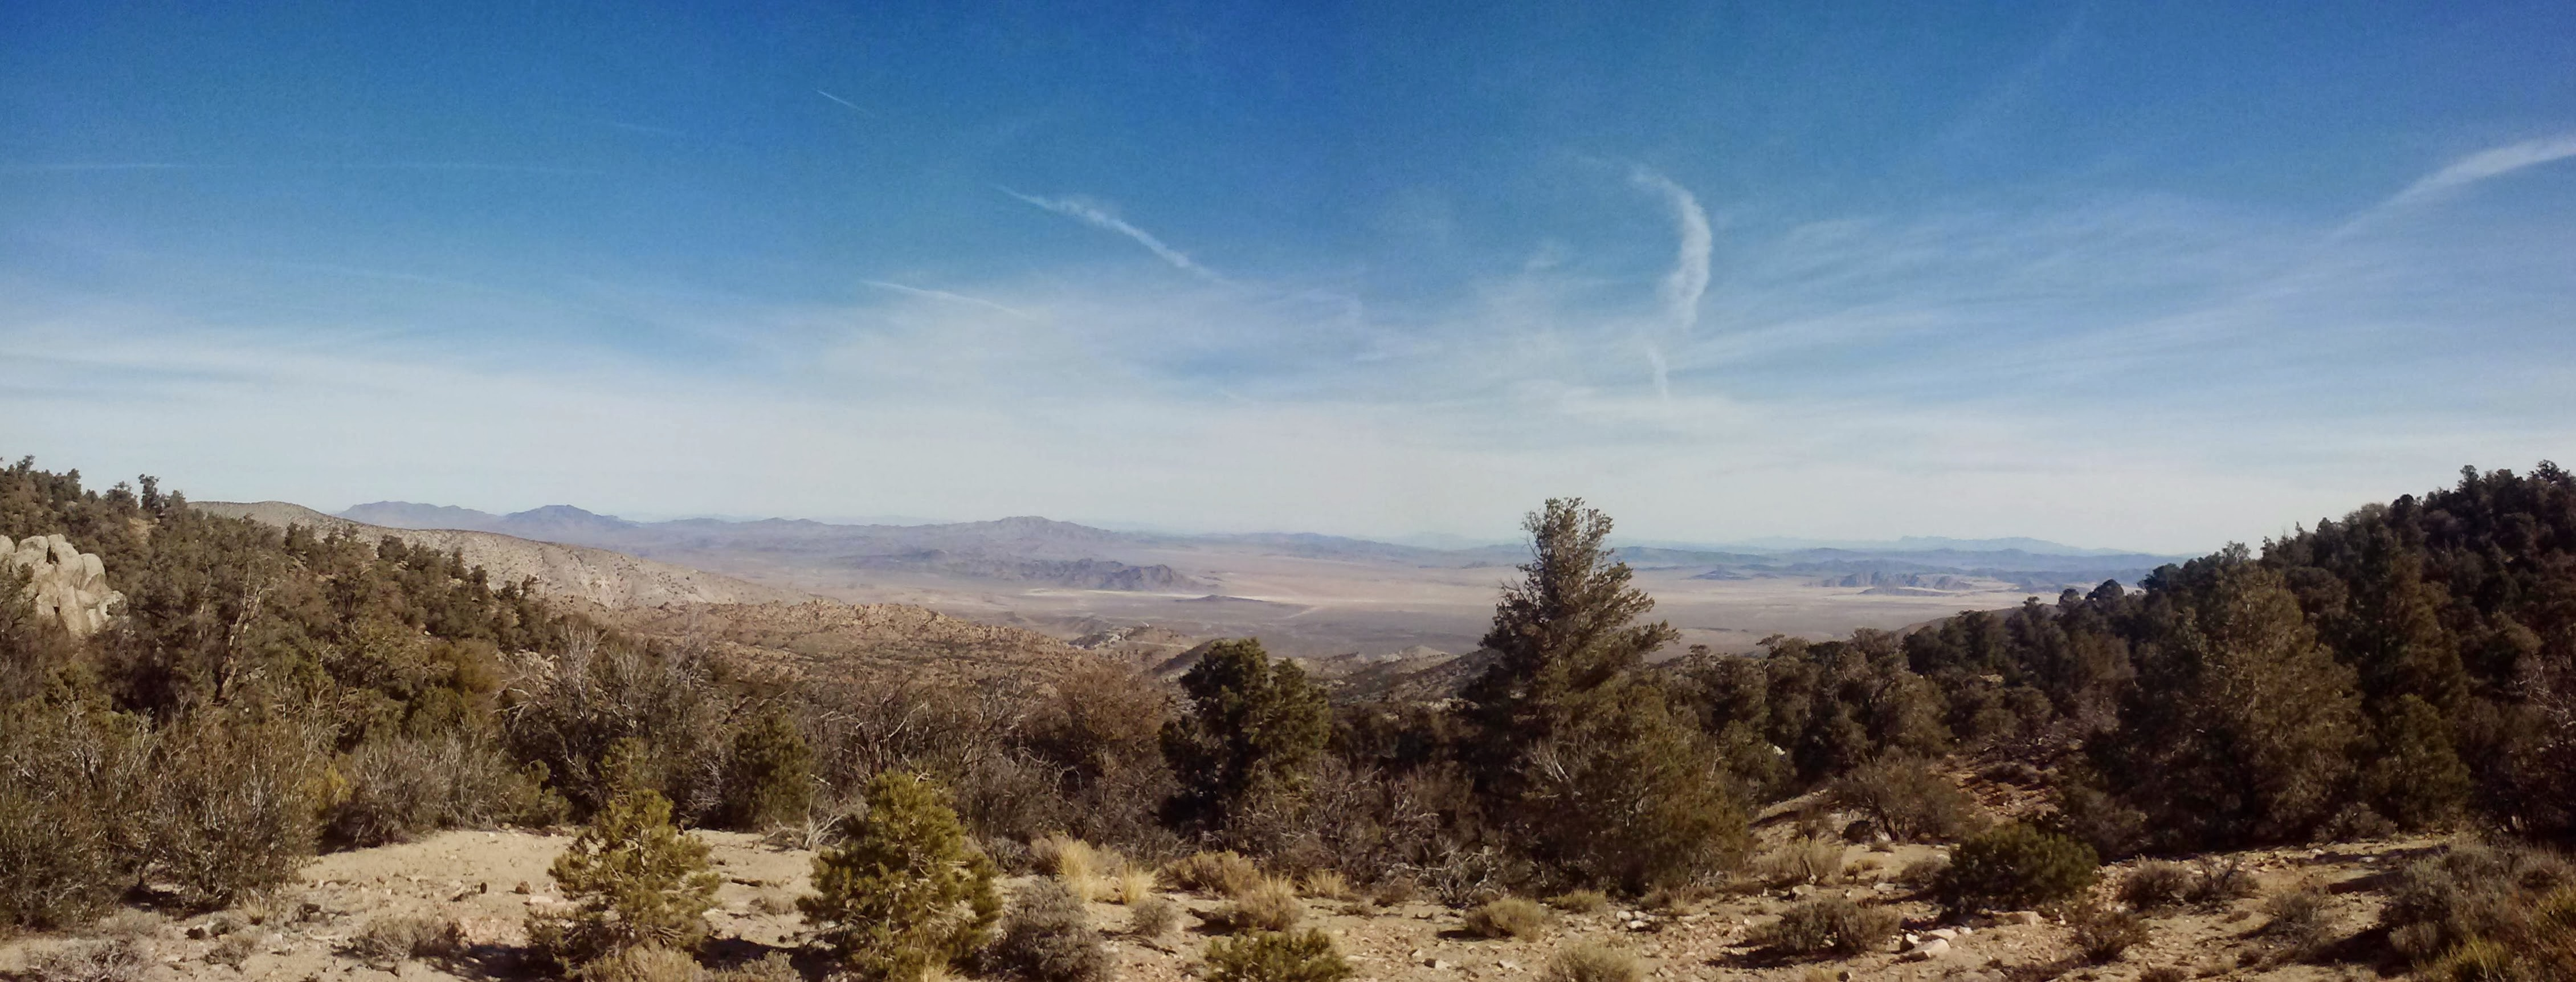 View towards the southern reaches of the Mojave Desert